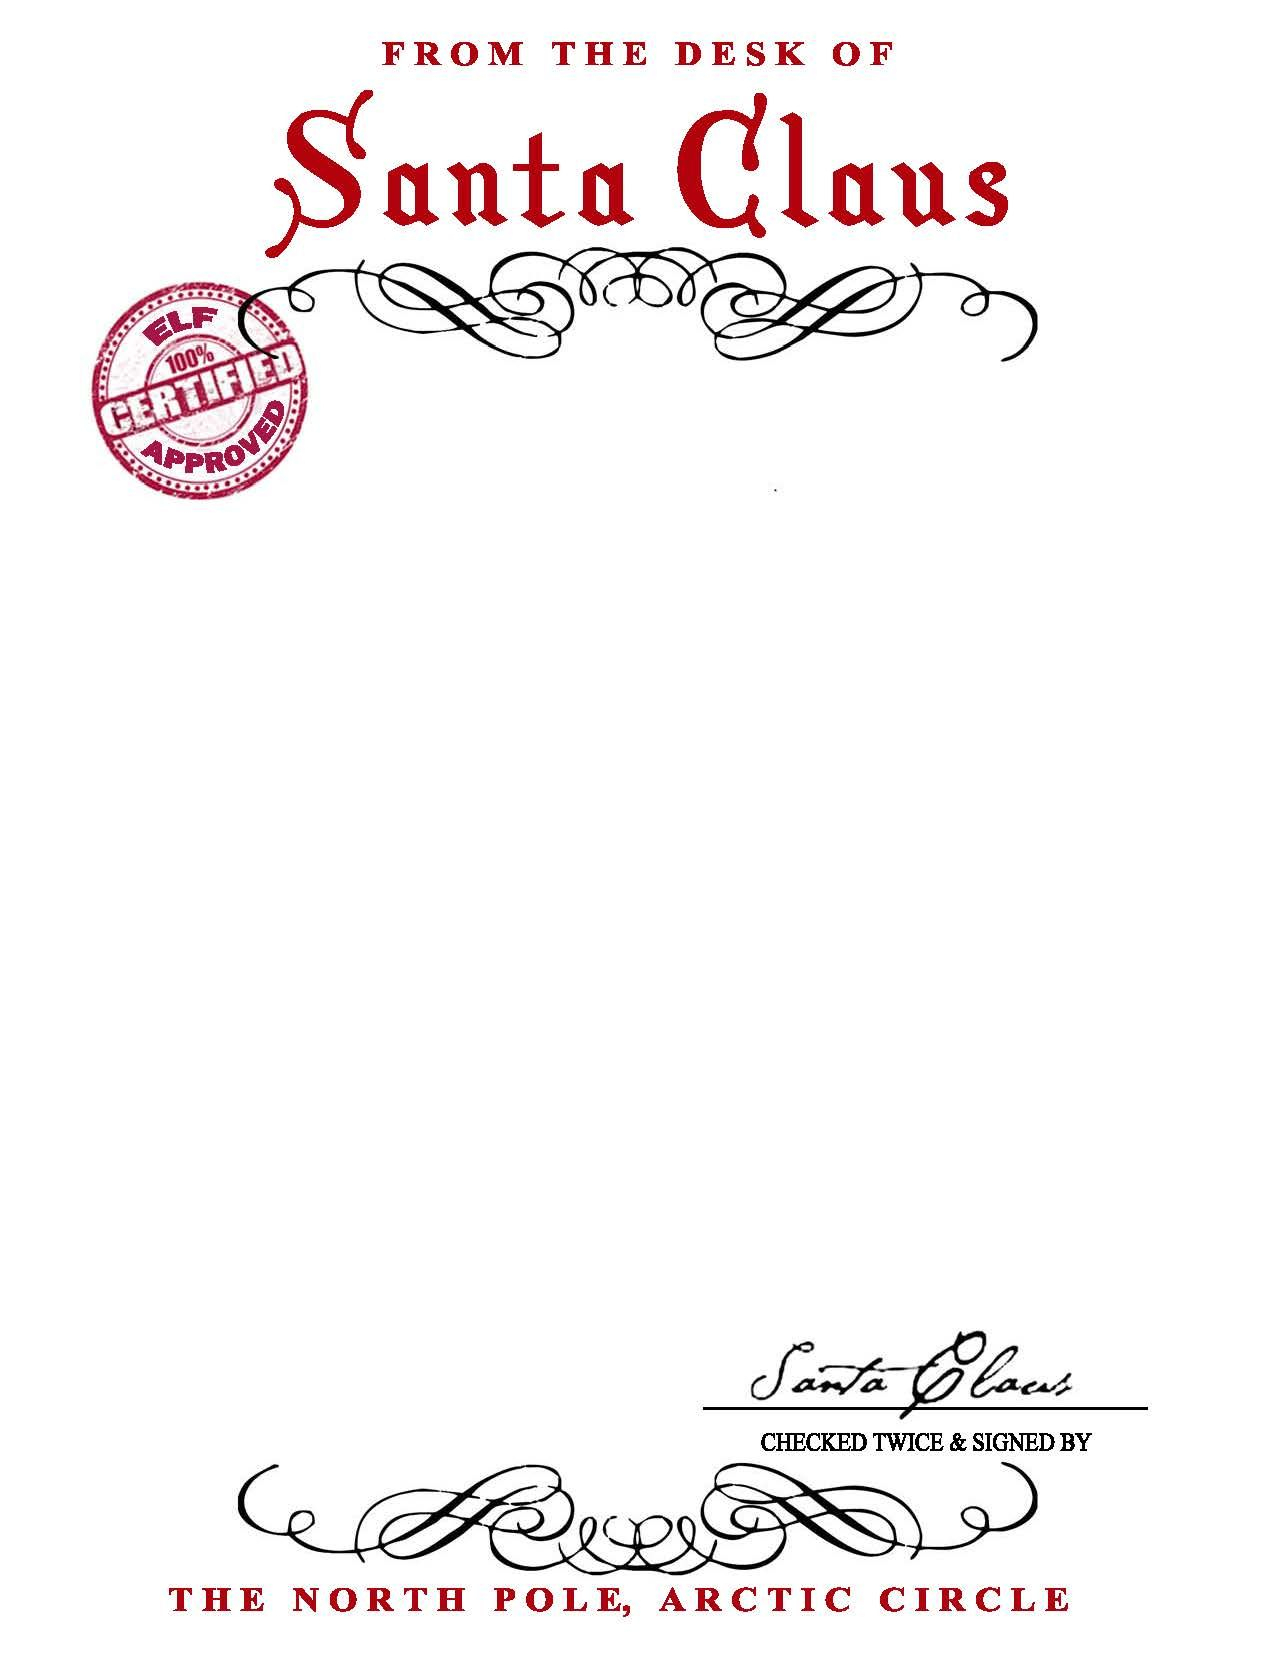 Santa Claus Letterhead.. Will Bring Lots Of Joy To Children With Letter From Santa Template Word